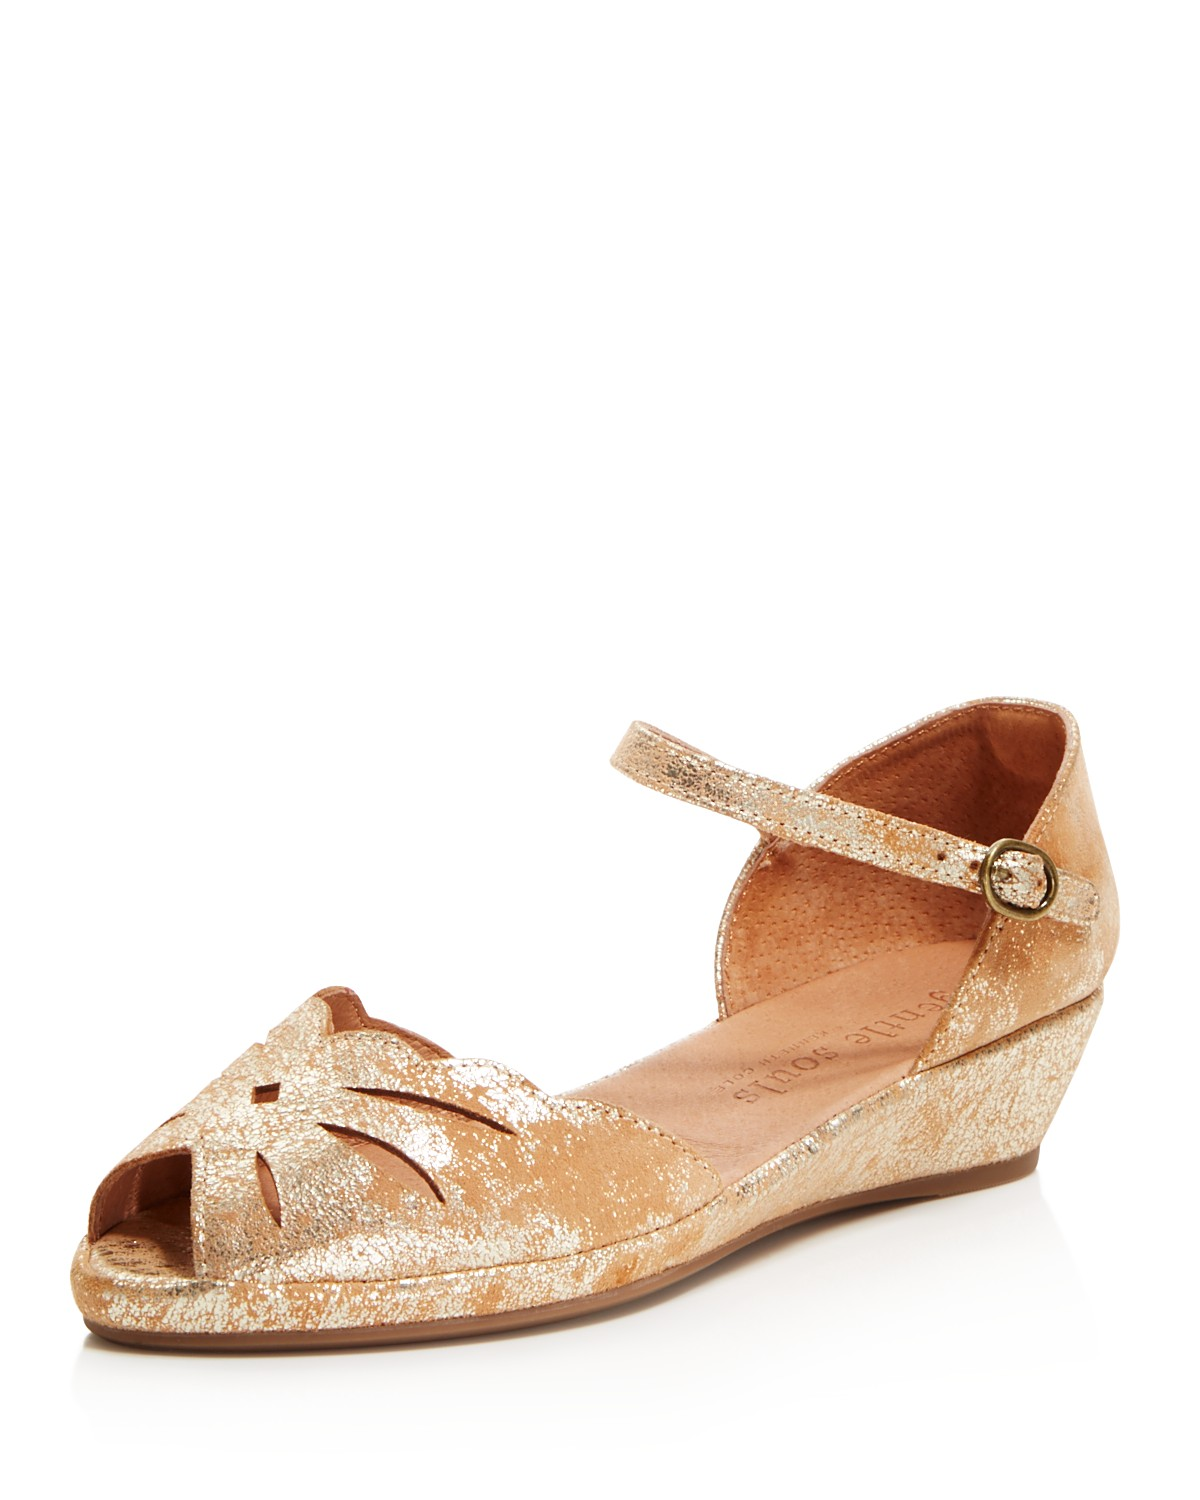 Kenneth Cole Gentle Souls Women's Lily Moon Leather Wedge Flats 7pVXm